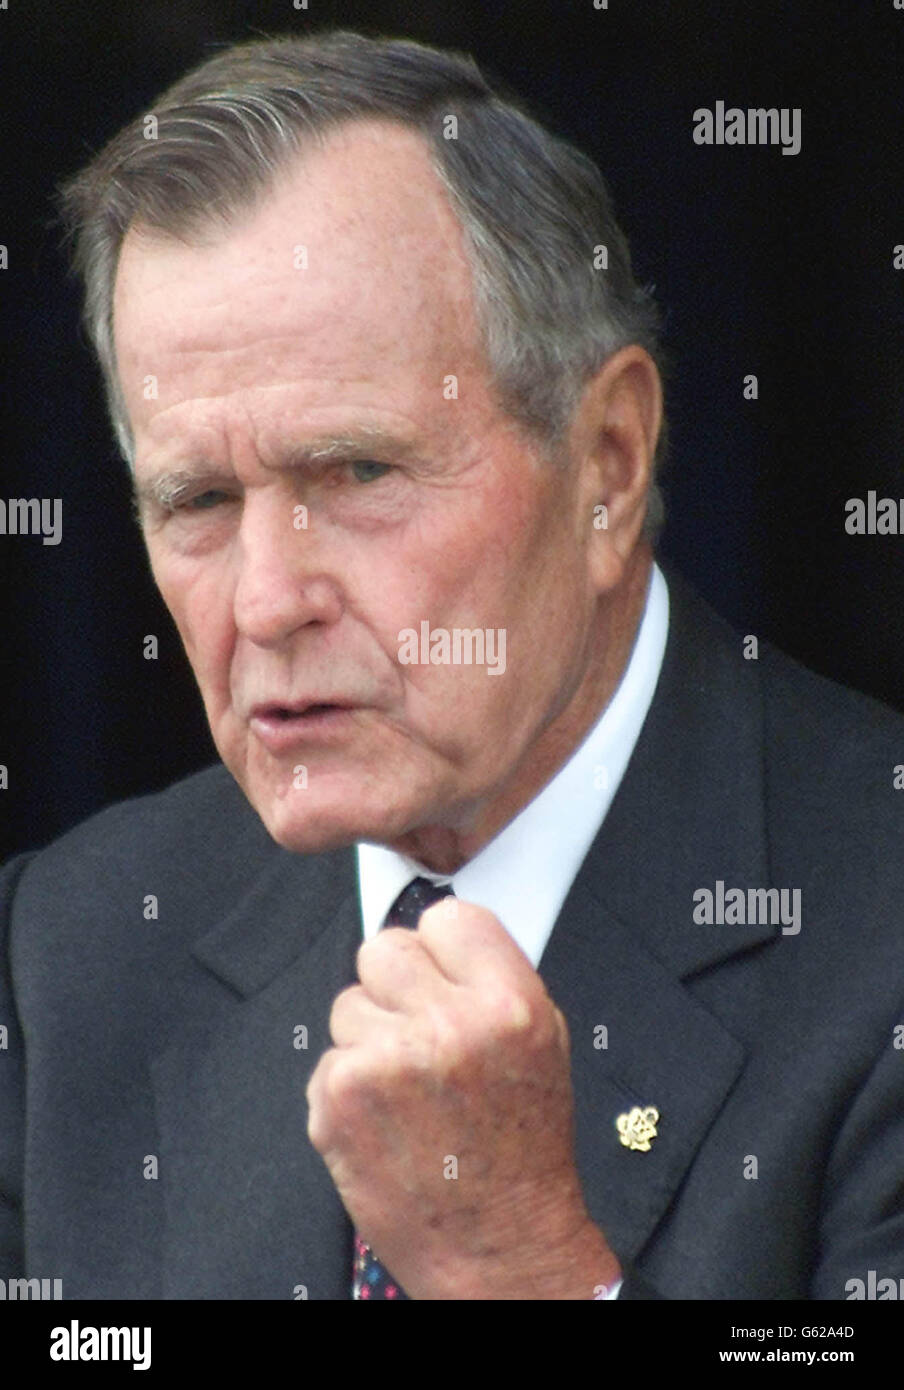 Former U.S. President George Bush gestures as he speaks of Iraq and the Desert Storm campaign during the rededication of the American Air Museum at the Duxford's Imperial War Museum, Cambridgeshire. Stock Photo